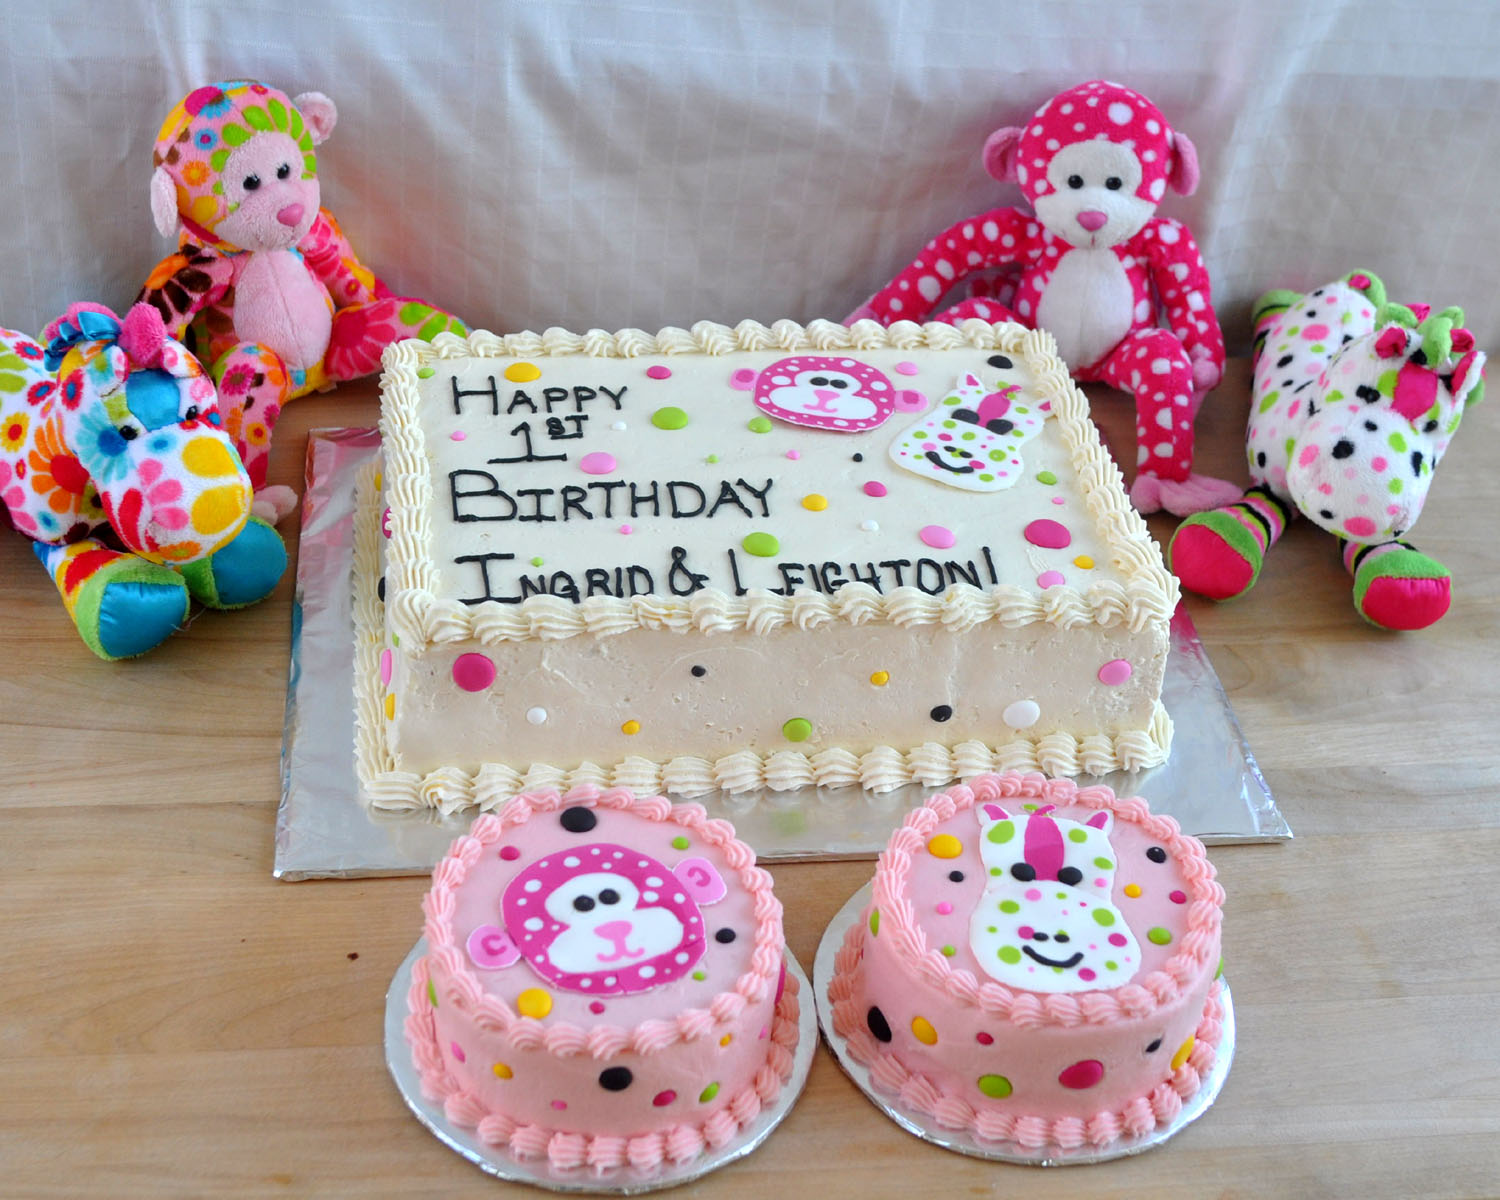 Cake Icing Ideas Birthday : Beki Cook s Cake Blog: Cakes